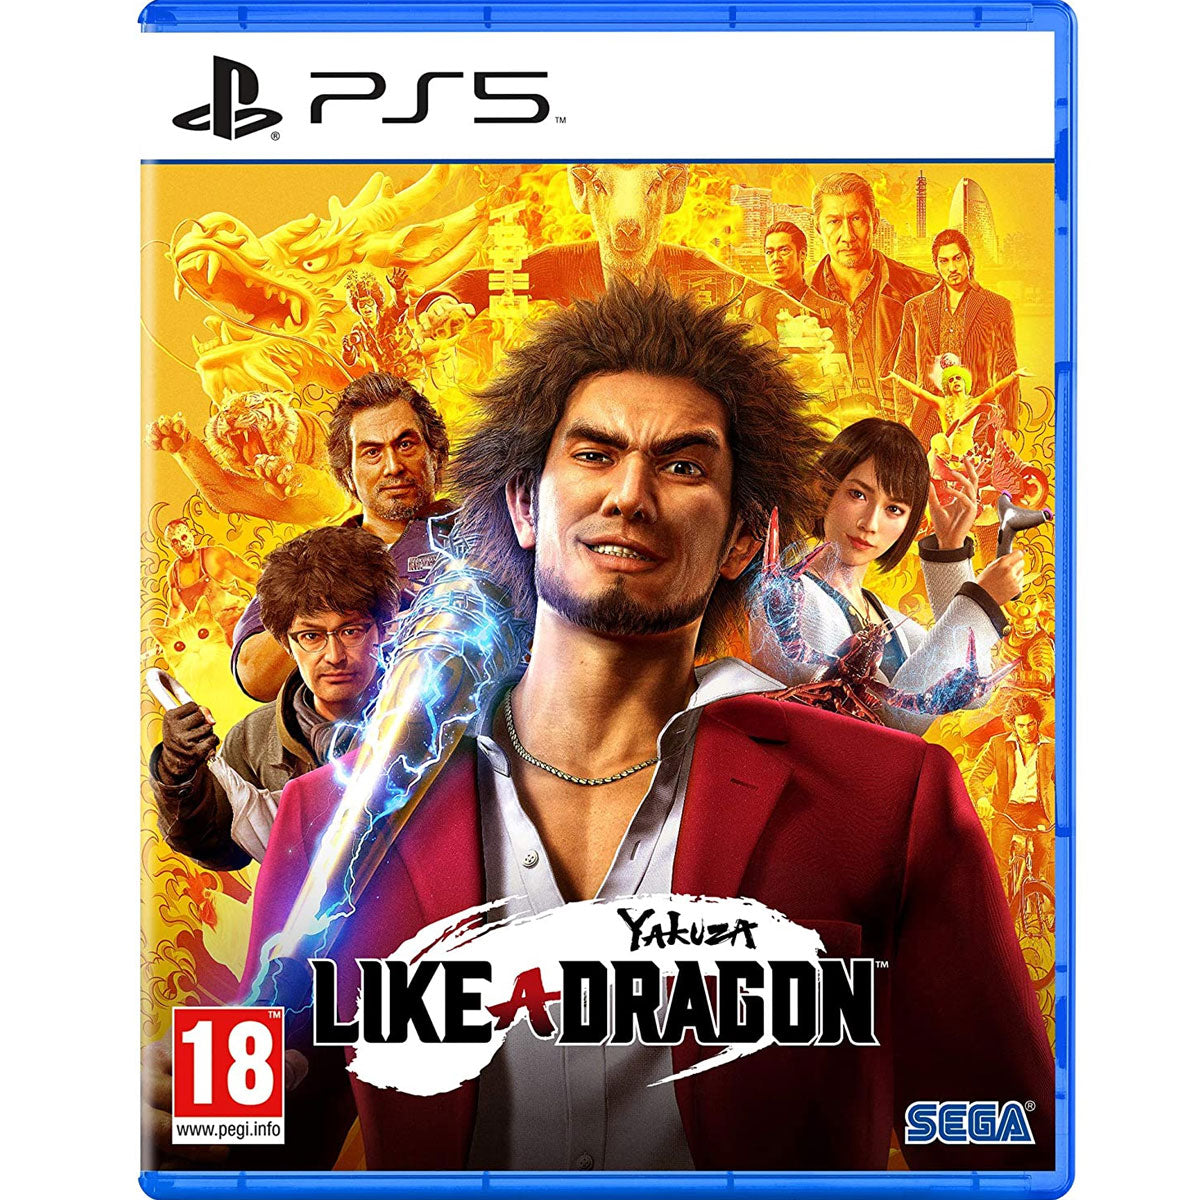 PS5 Yakuza 7 International a.k.a. Yakuza: Like a Dragon